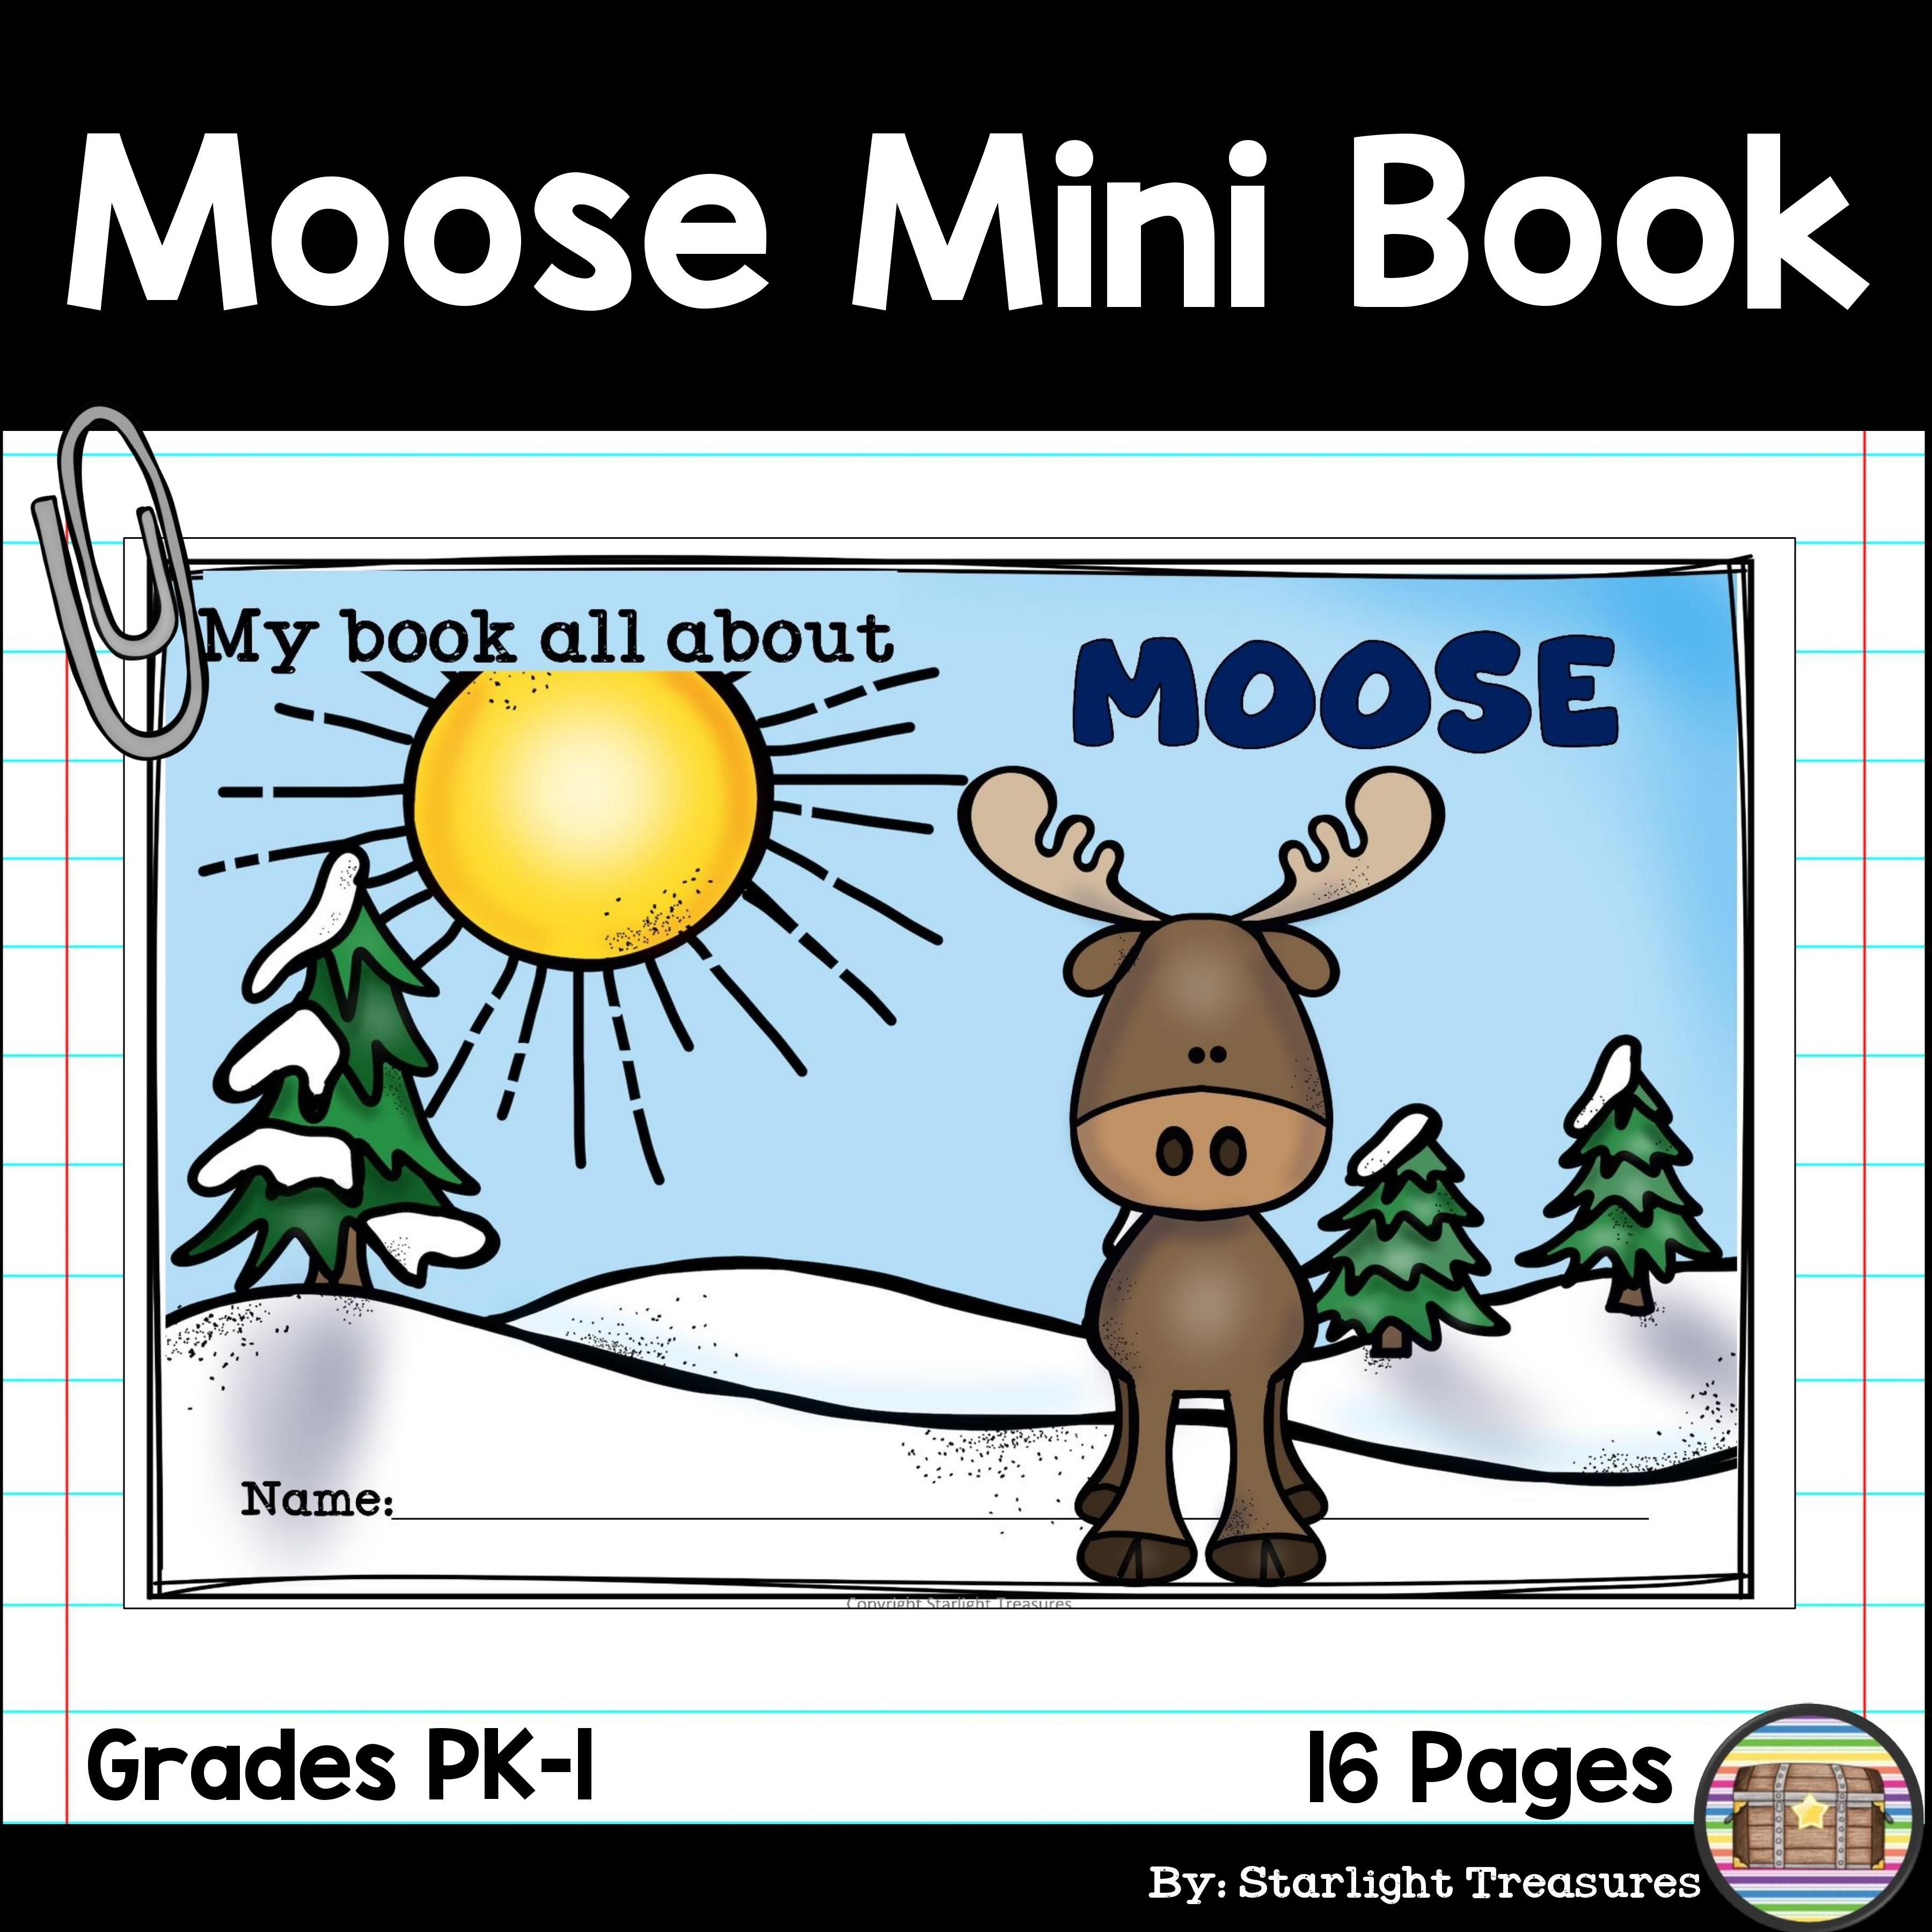 Moose Mini Book For Early Readers